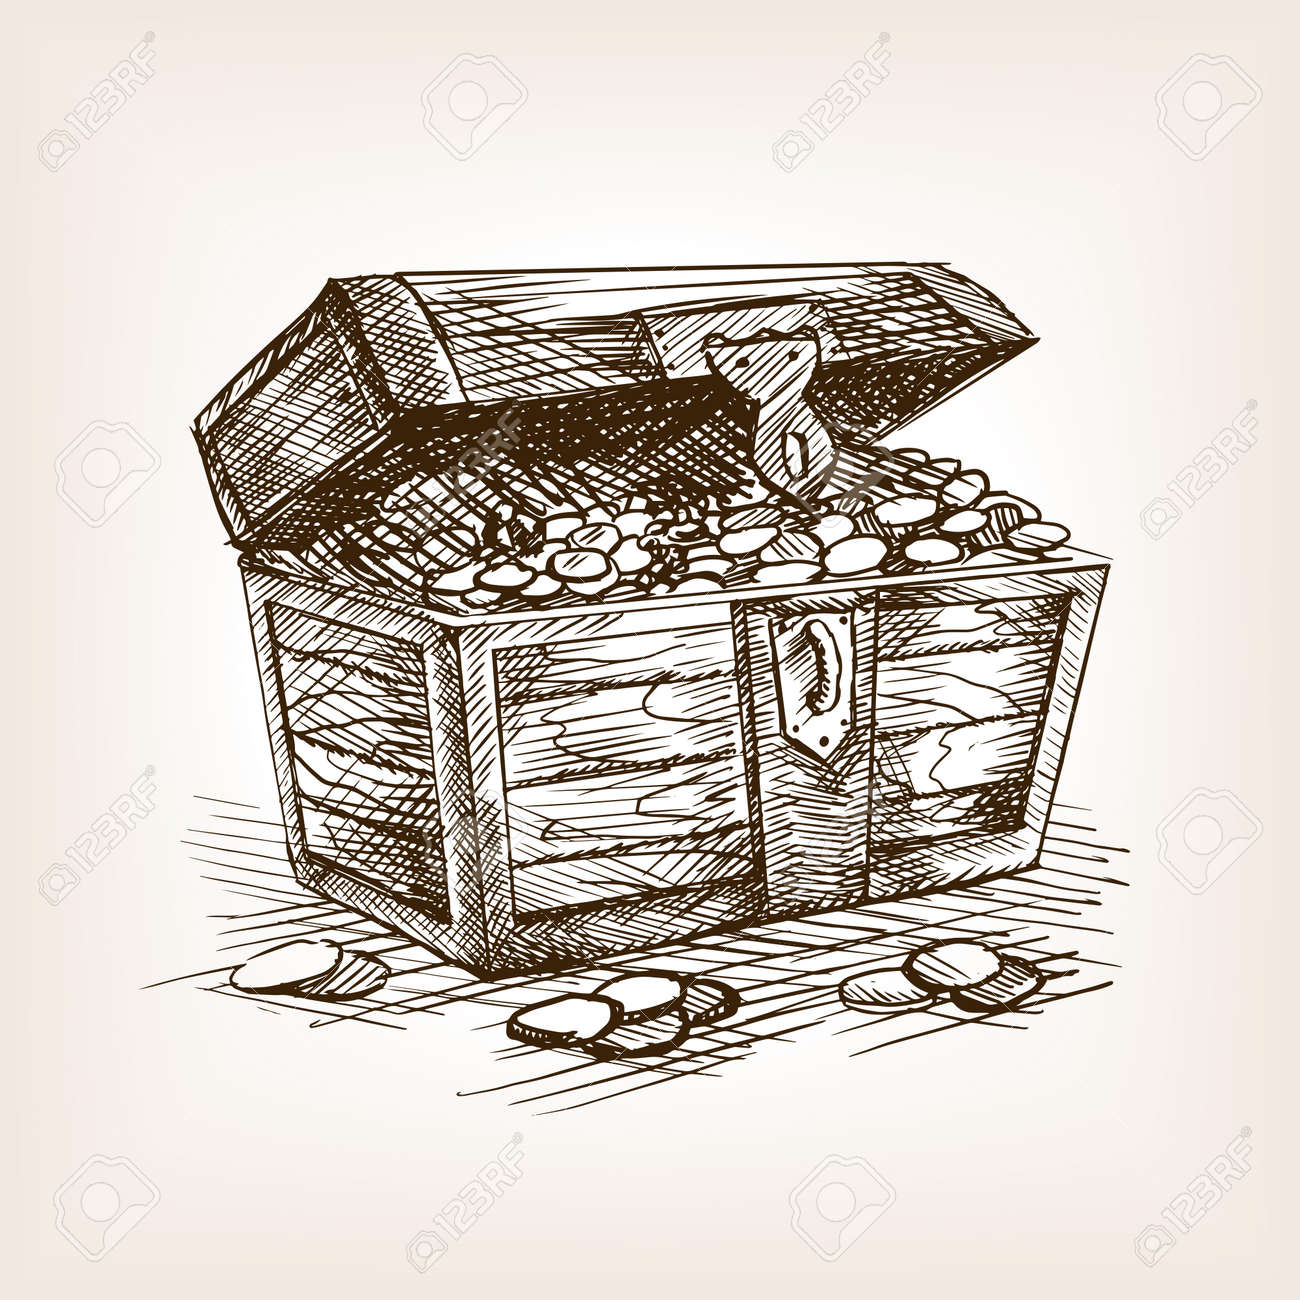 treasure chest sketch style vector illustration old hand drawn